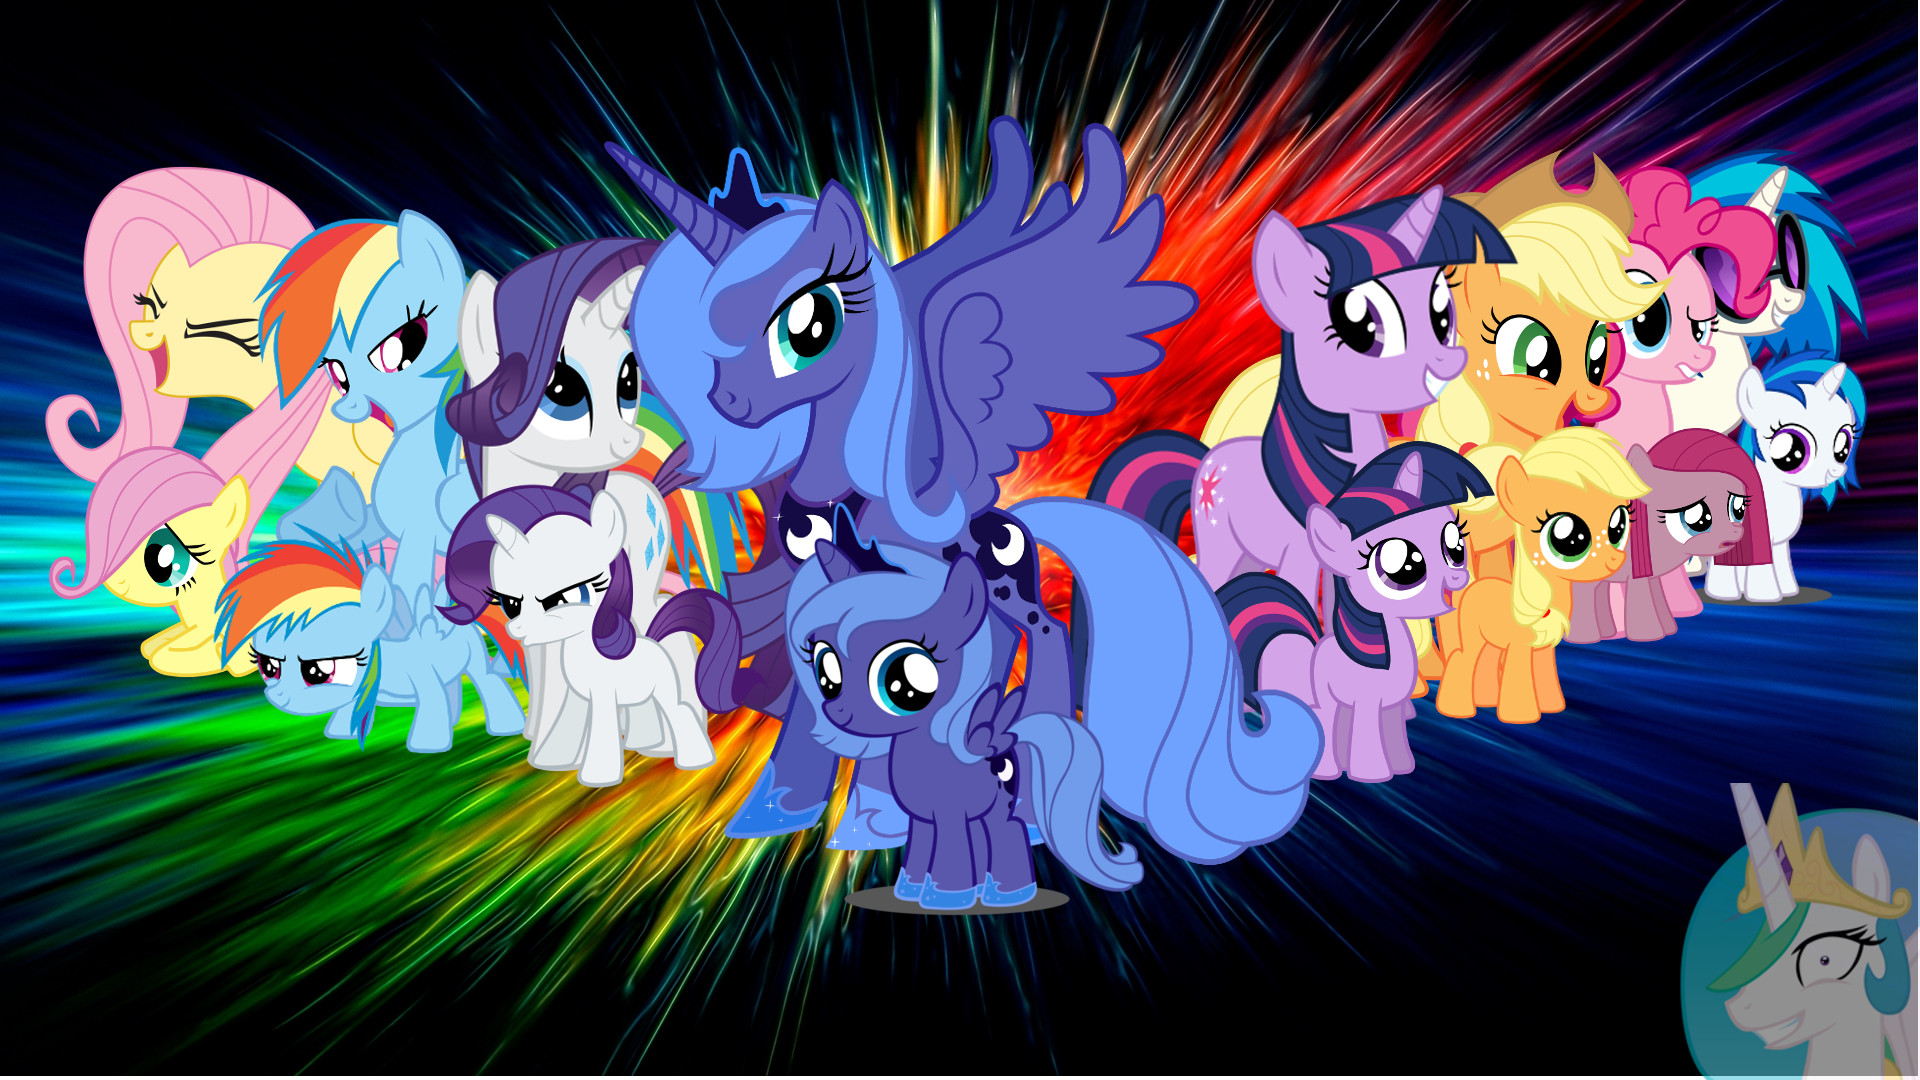 1920x1080 My Little Pony Friendship is Magic My Little Pony Hd Wallpaper